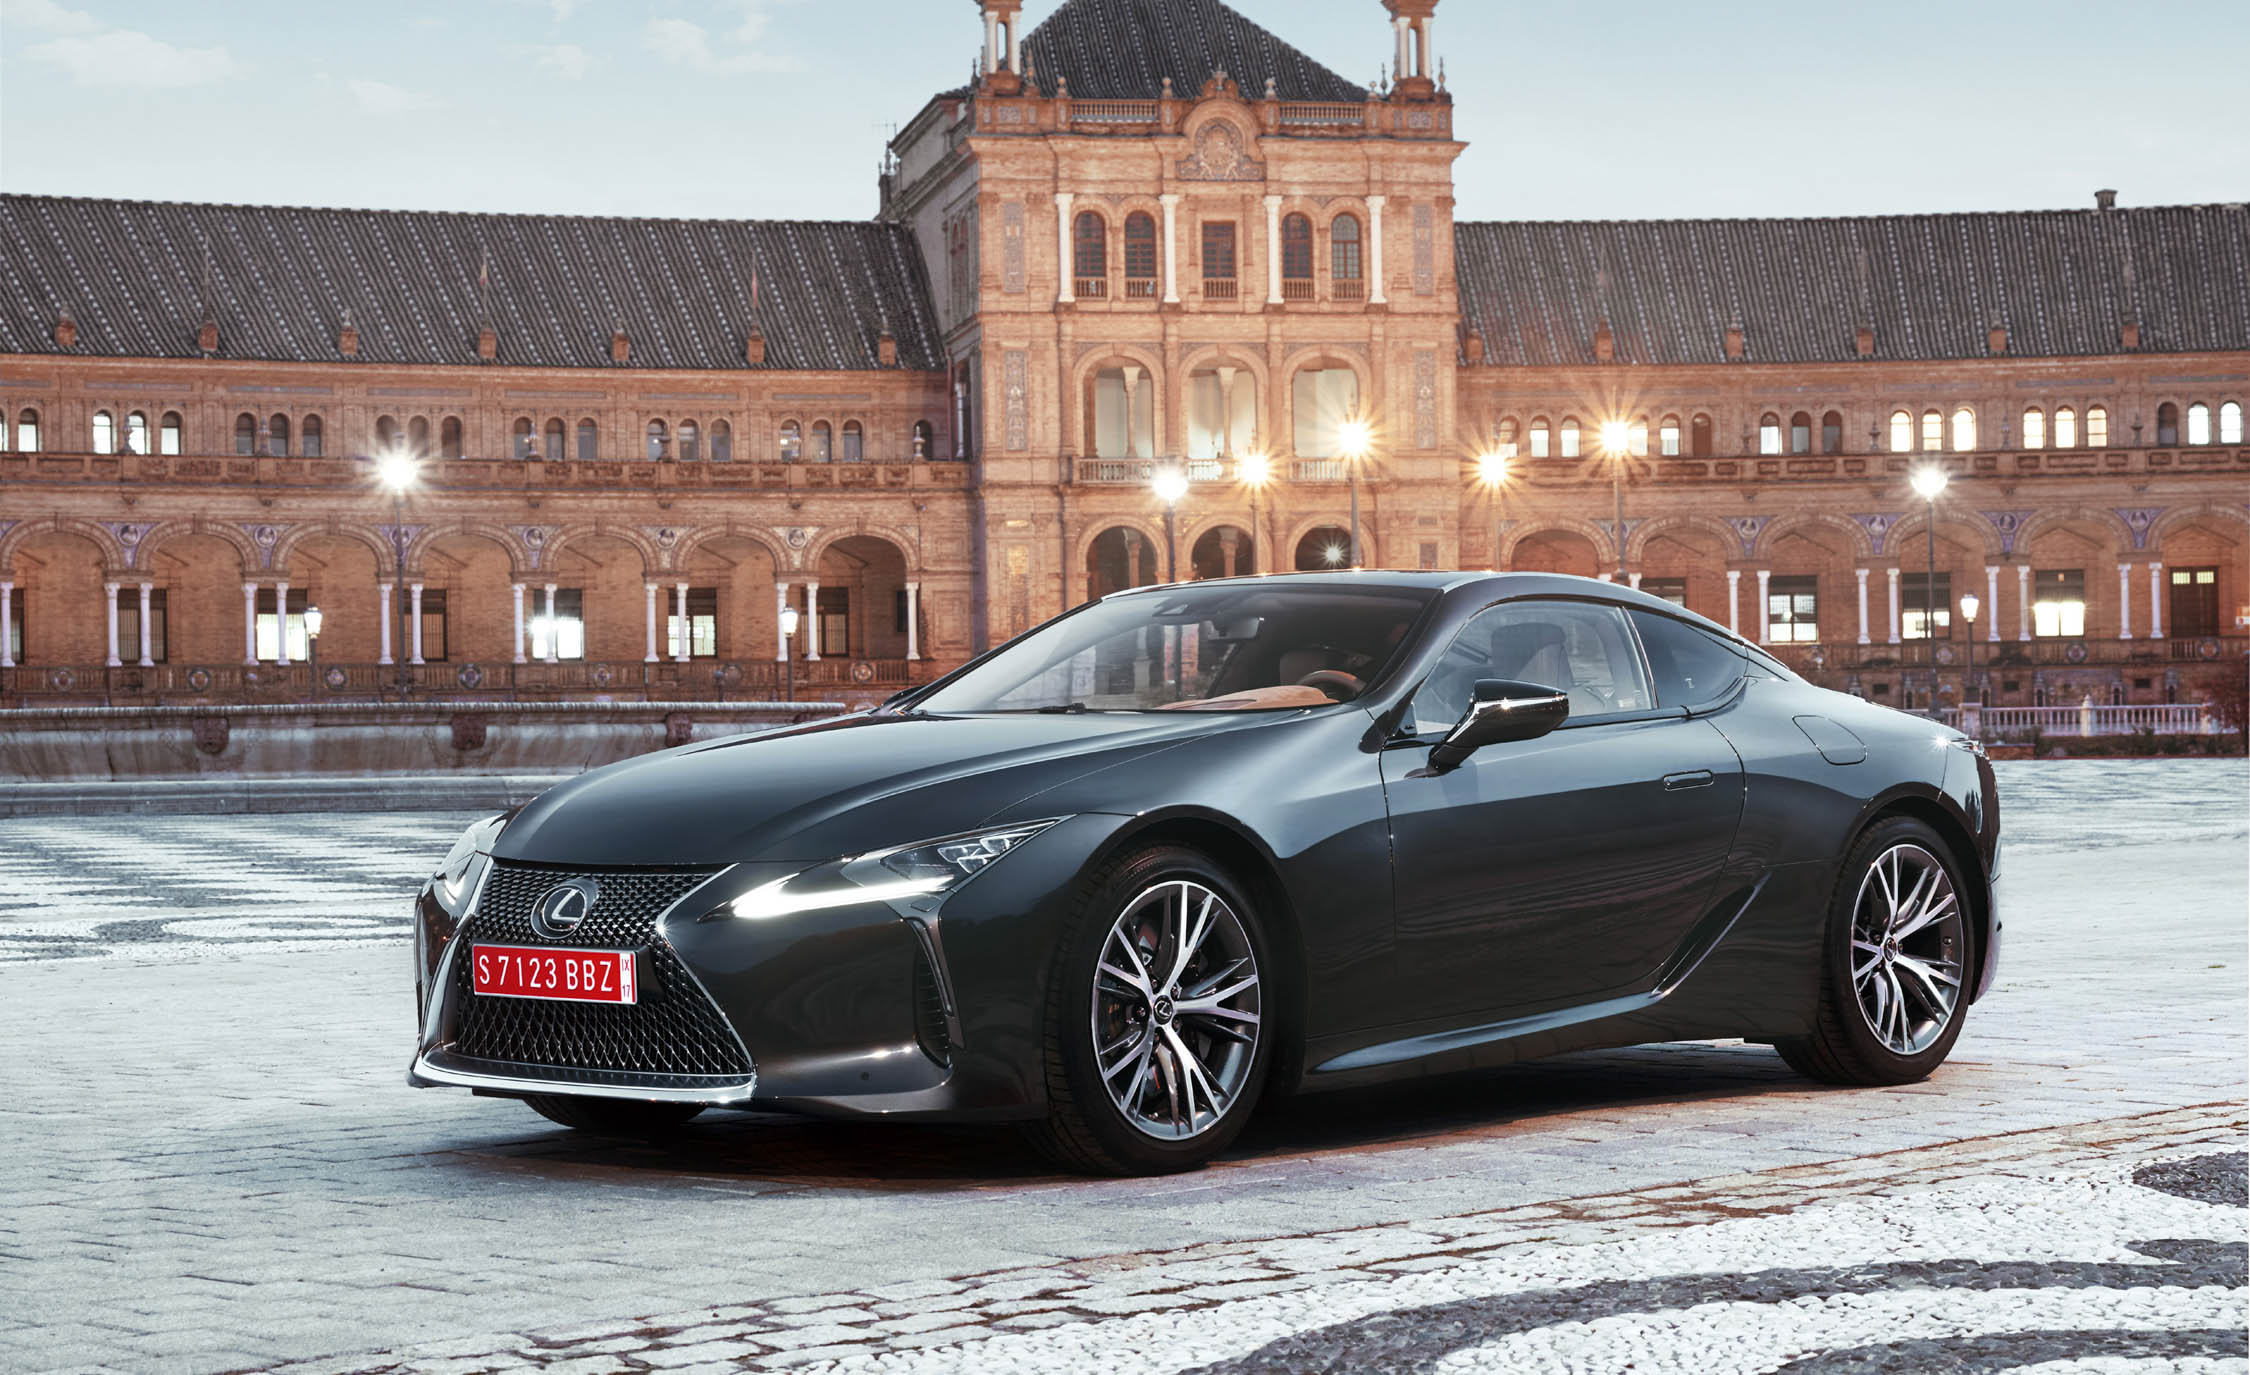 2018 Lexus Lc 500 Black Exterior Side And Front (View 67 of 84)